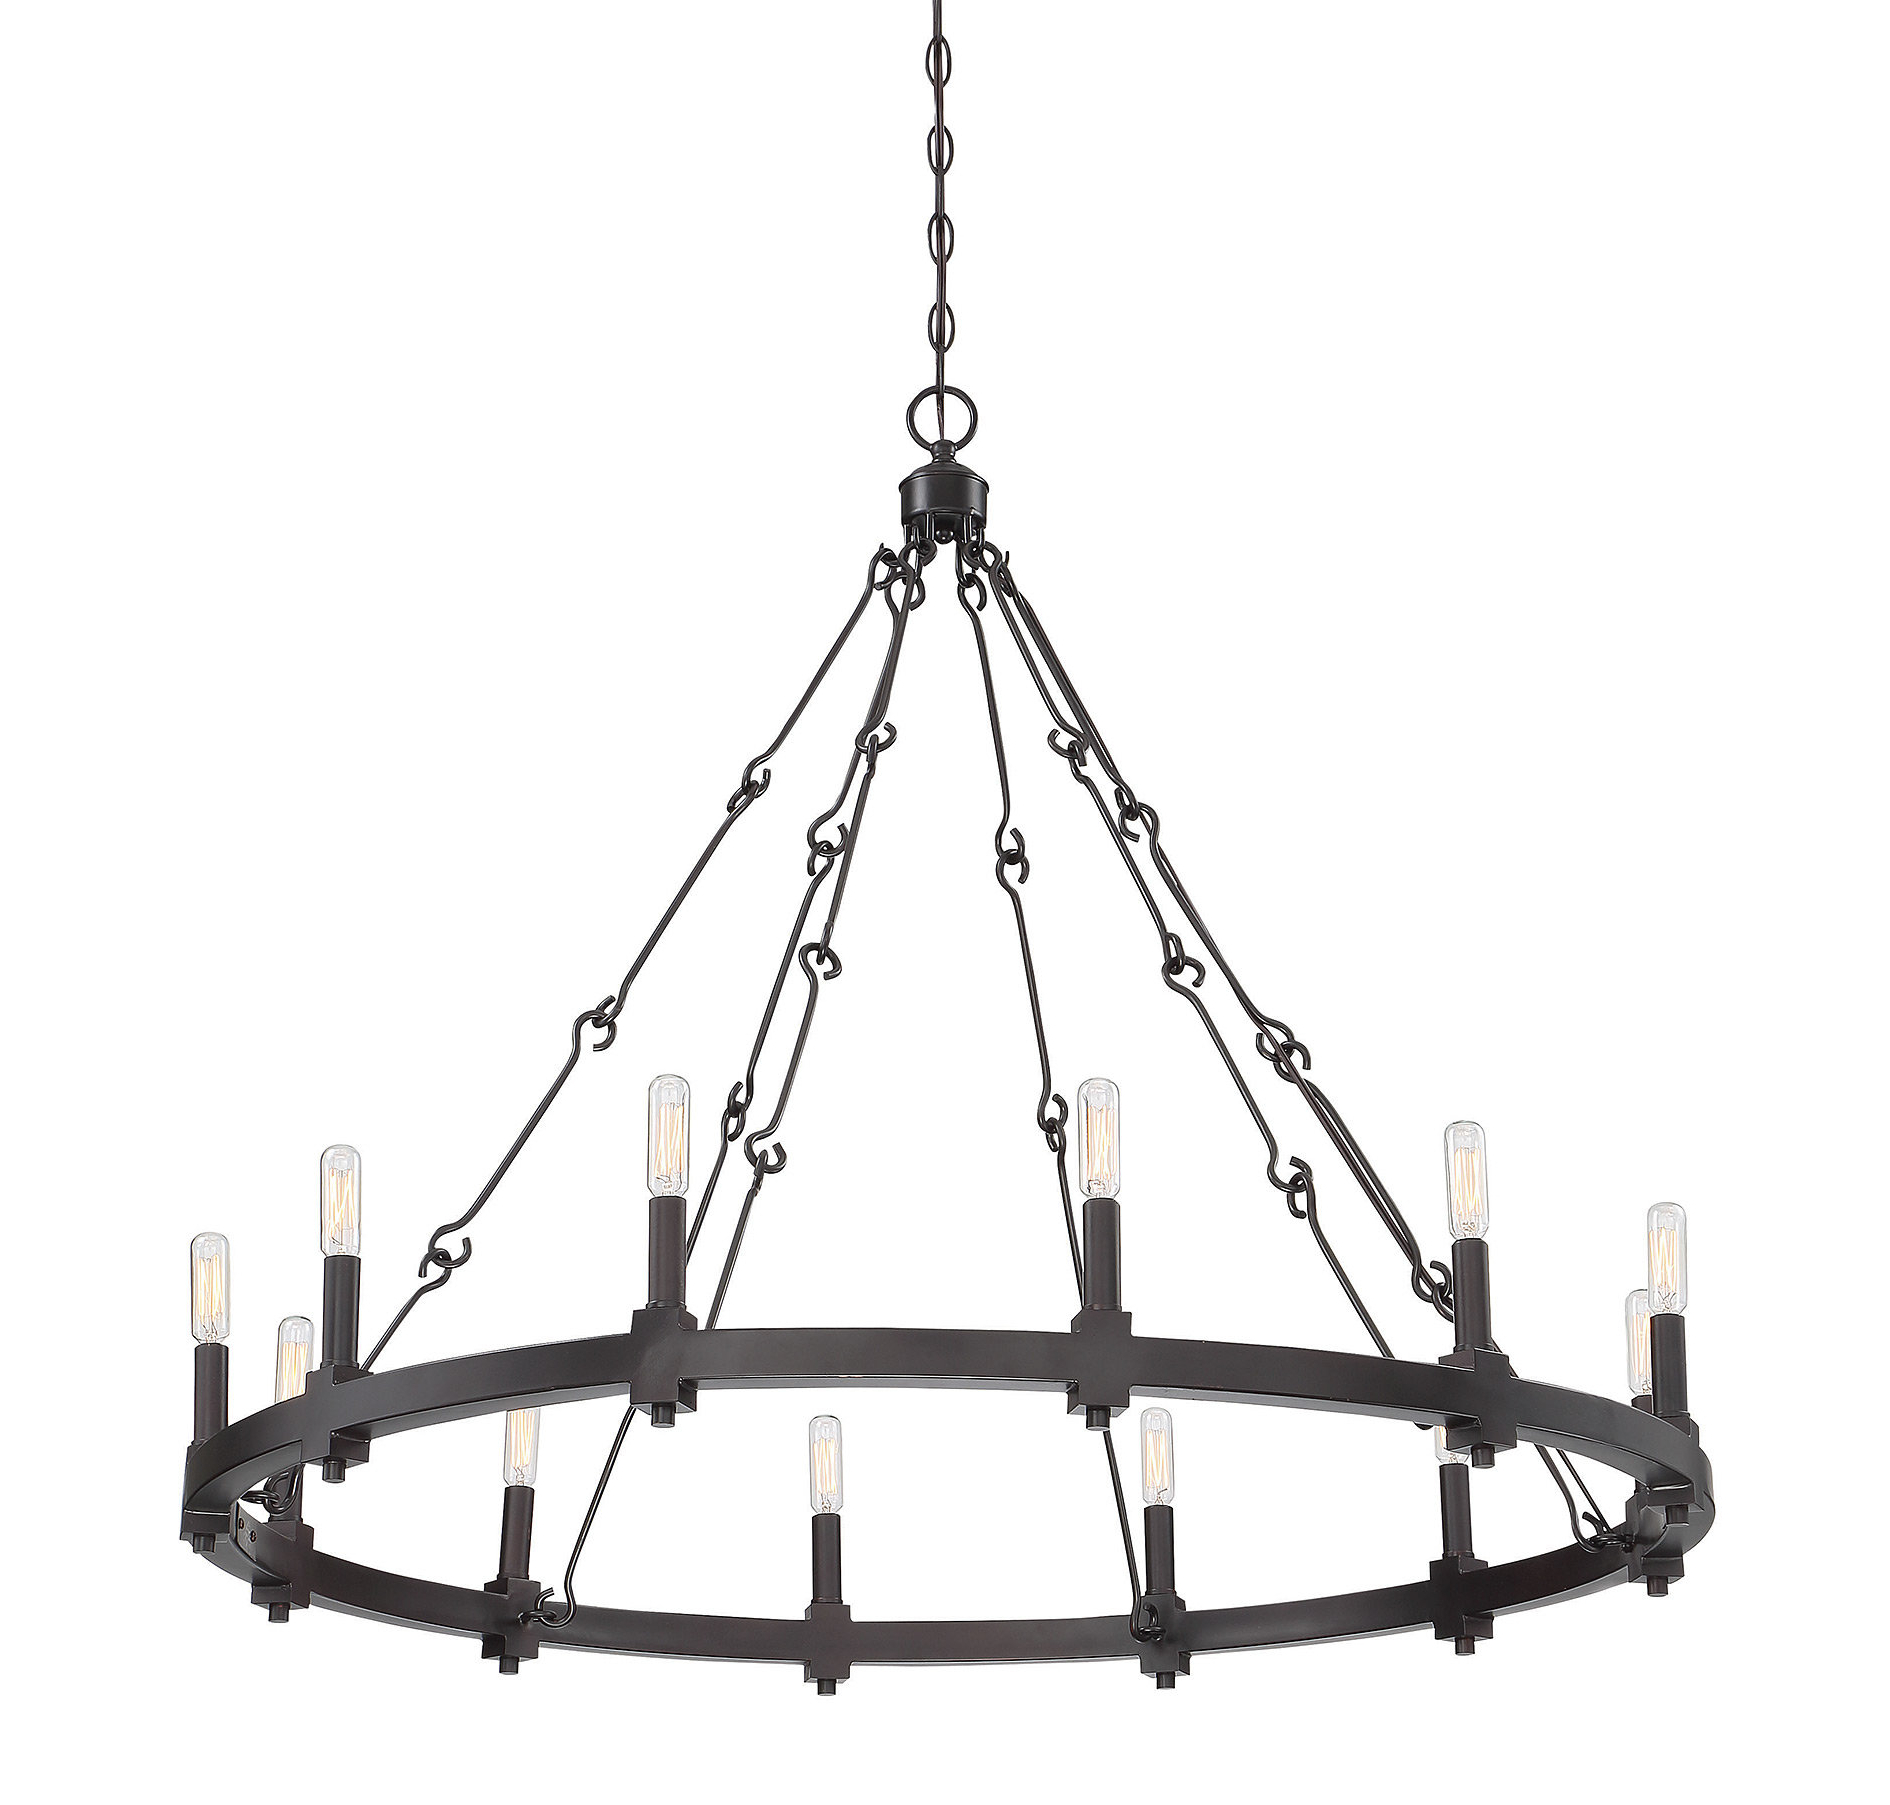 Preferred Shayla 12 Light Wagon Wheel Chandeliers Regarding Montreal 12 Light Wagon Wheel Chandelier (View 13 of 25)